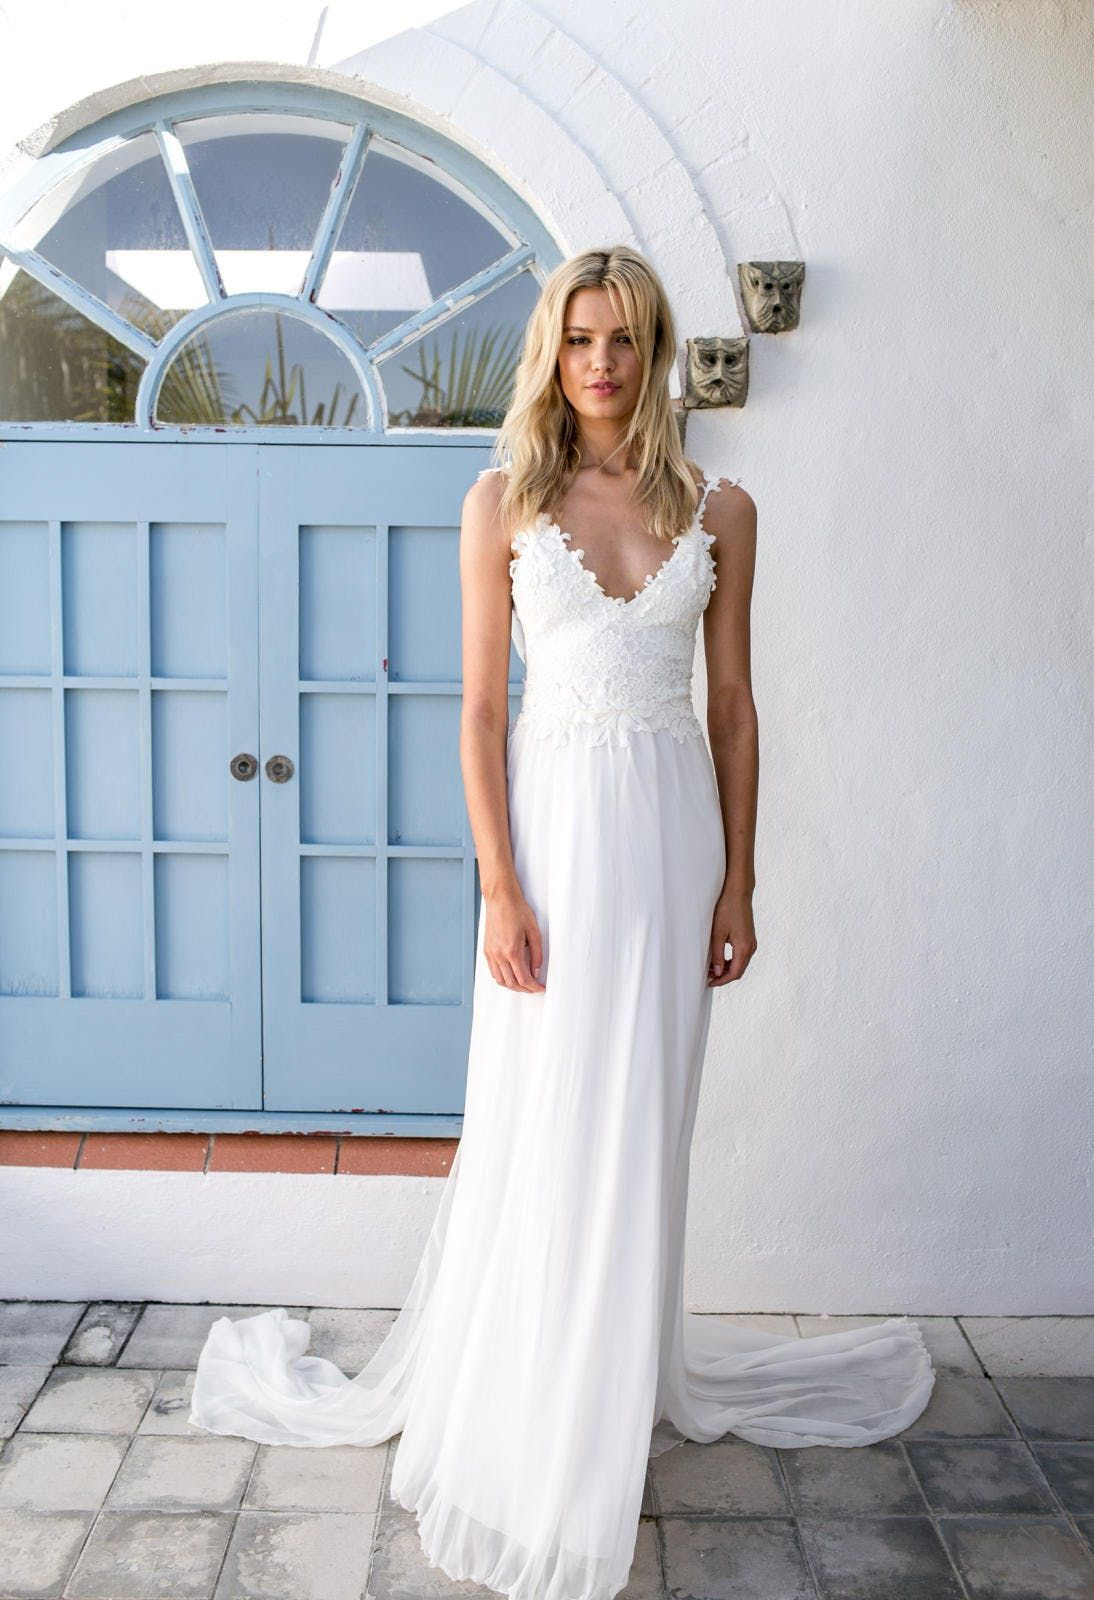 This Australian Wedding Dress Site Has the Non-Traditional Dress of ...